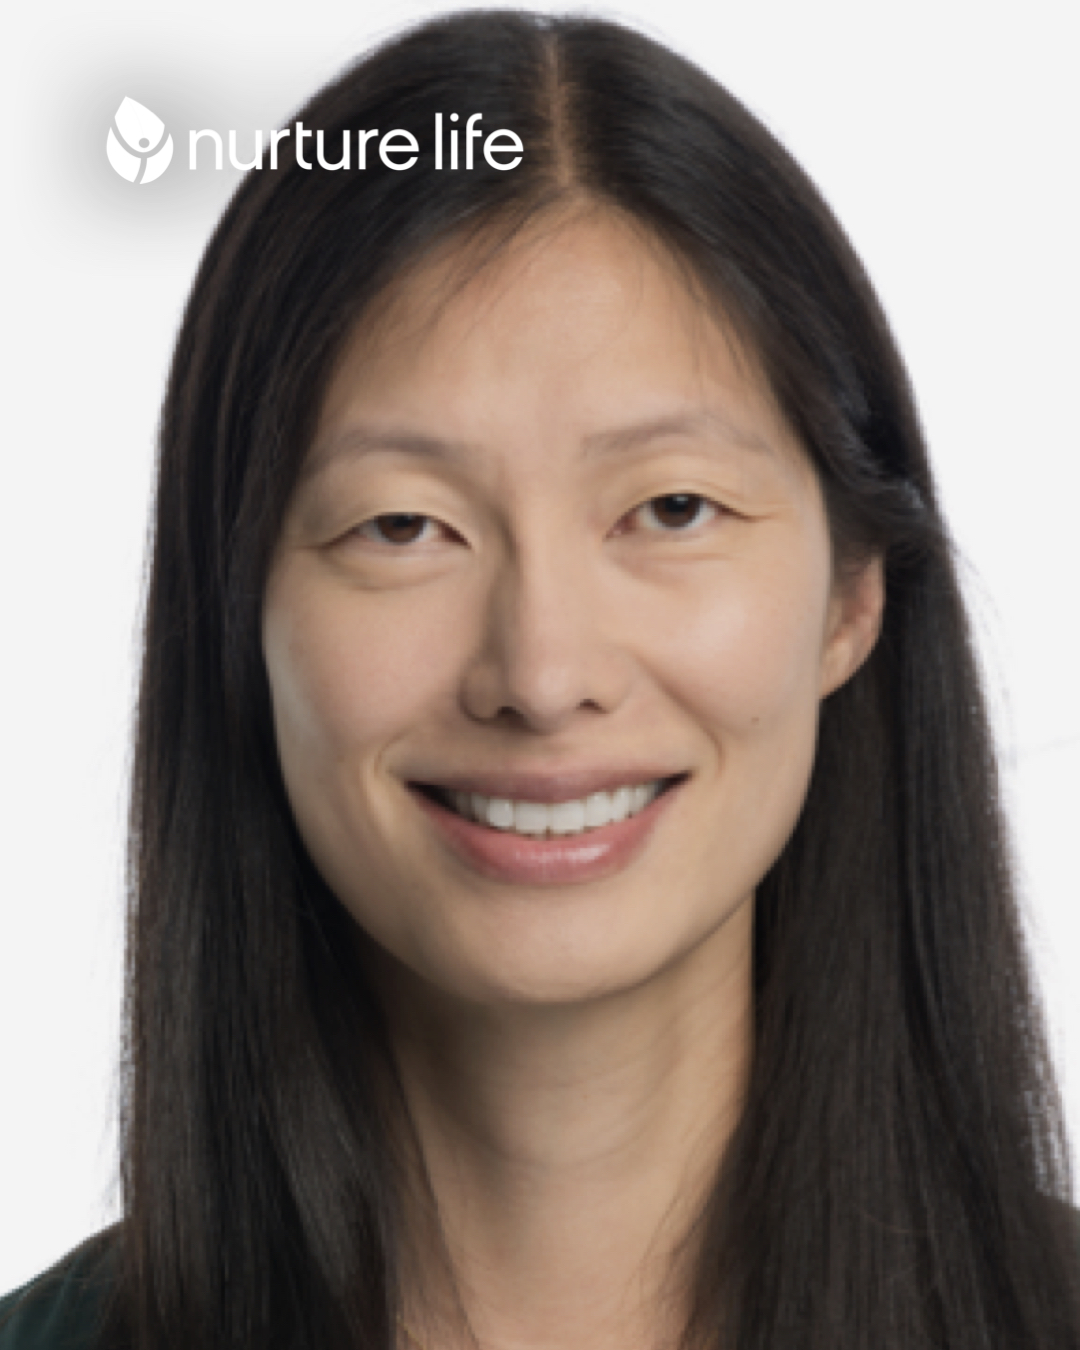 Jennifer Chow, Co-Founder, Nurture Life Inc. - Jennifer's work at Nurture Life is focused on product strategy and innovation, customer experience and technology. Prior to Nurture Life, Jennifer spent 17 years in marketing and product development in the technology industry, most recently as vice president of marketing at a high-growth, cloud platform startup and the two largest business software companies SAP and Oracle Corporation.